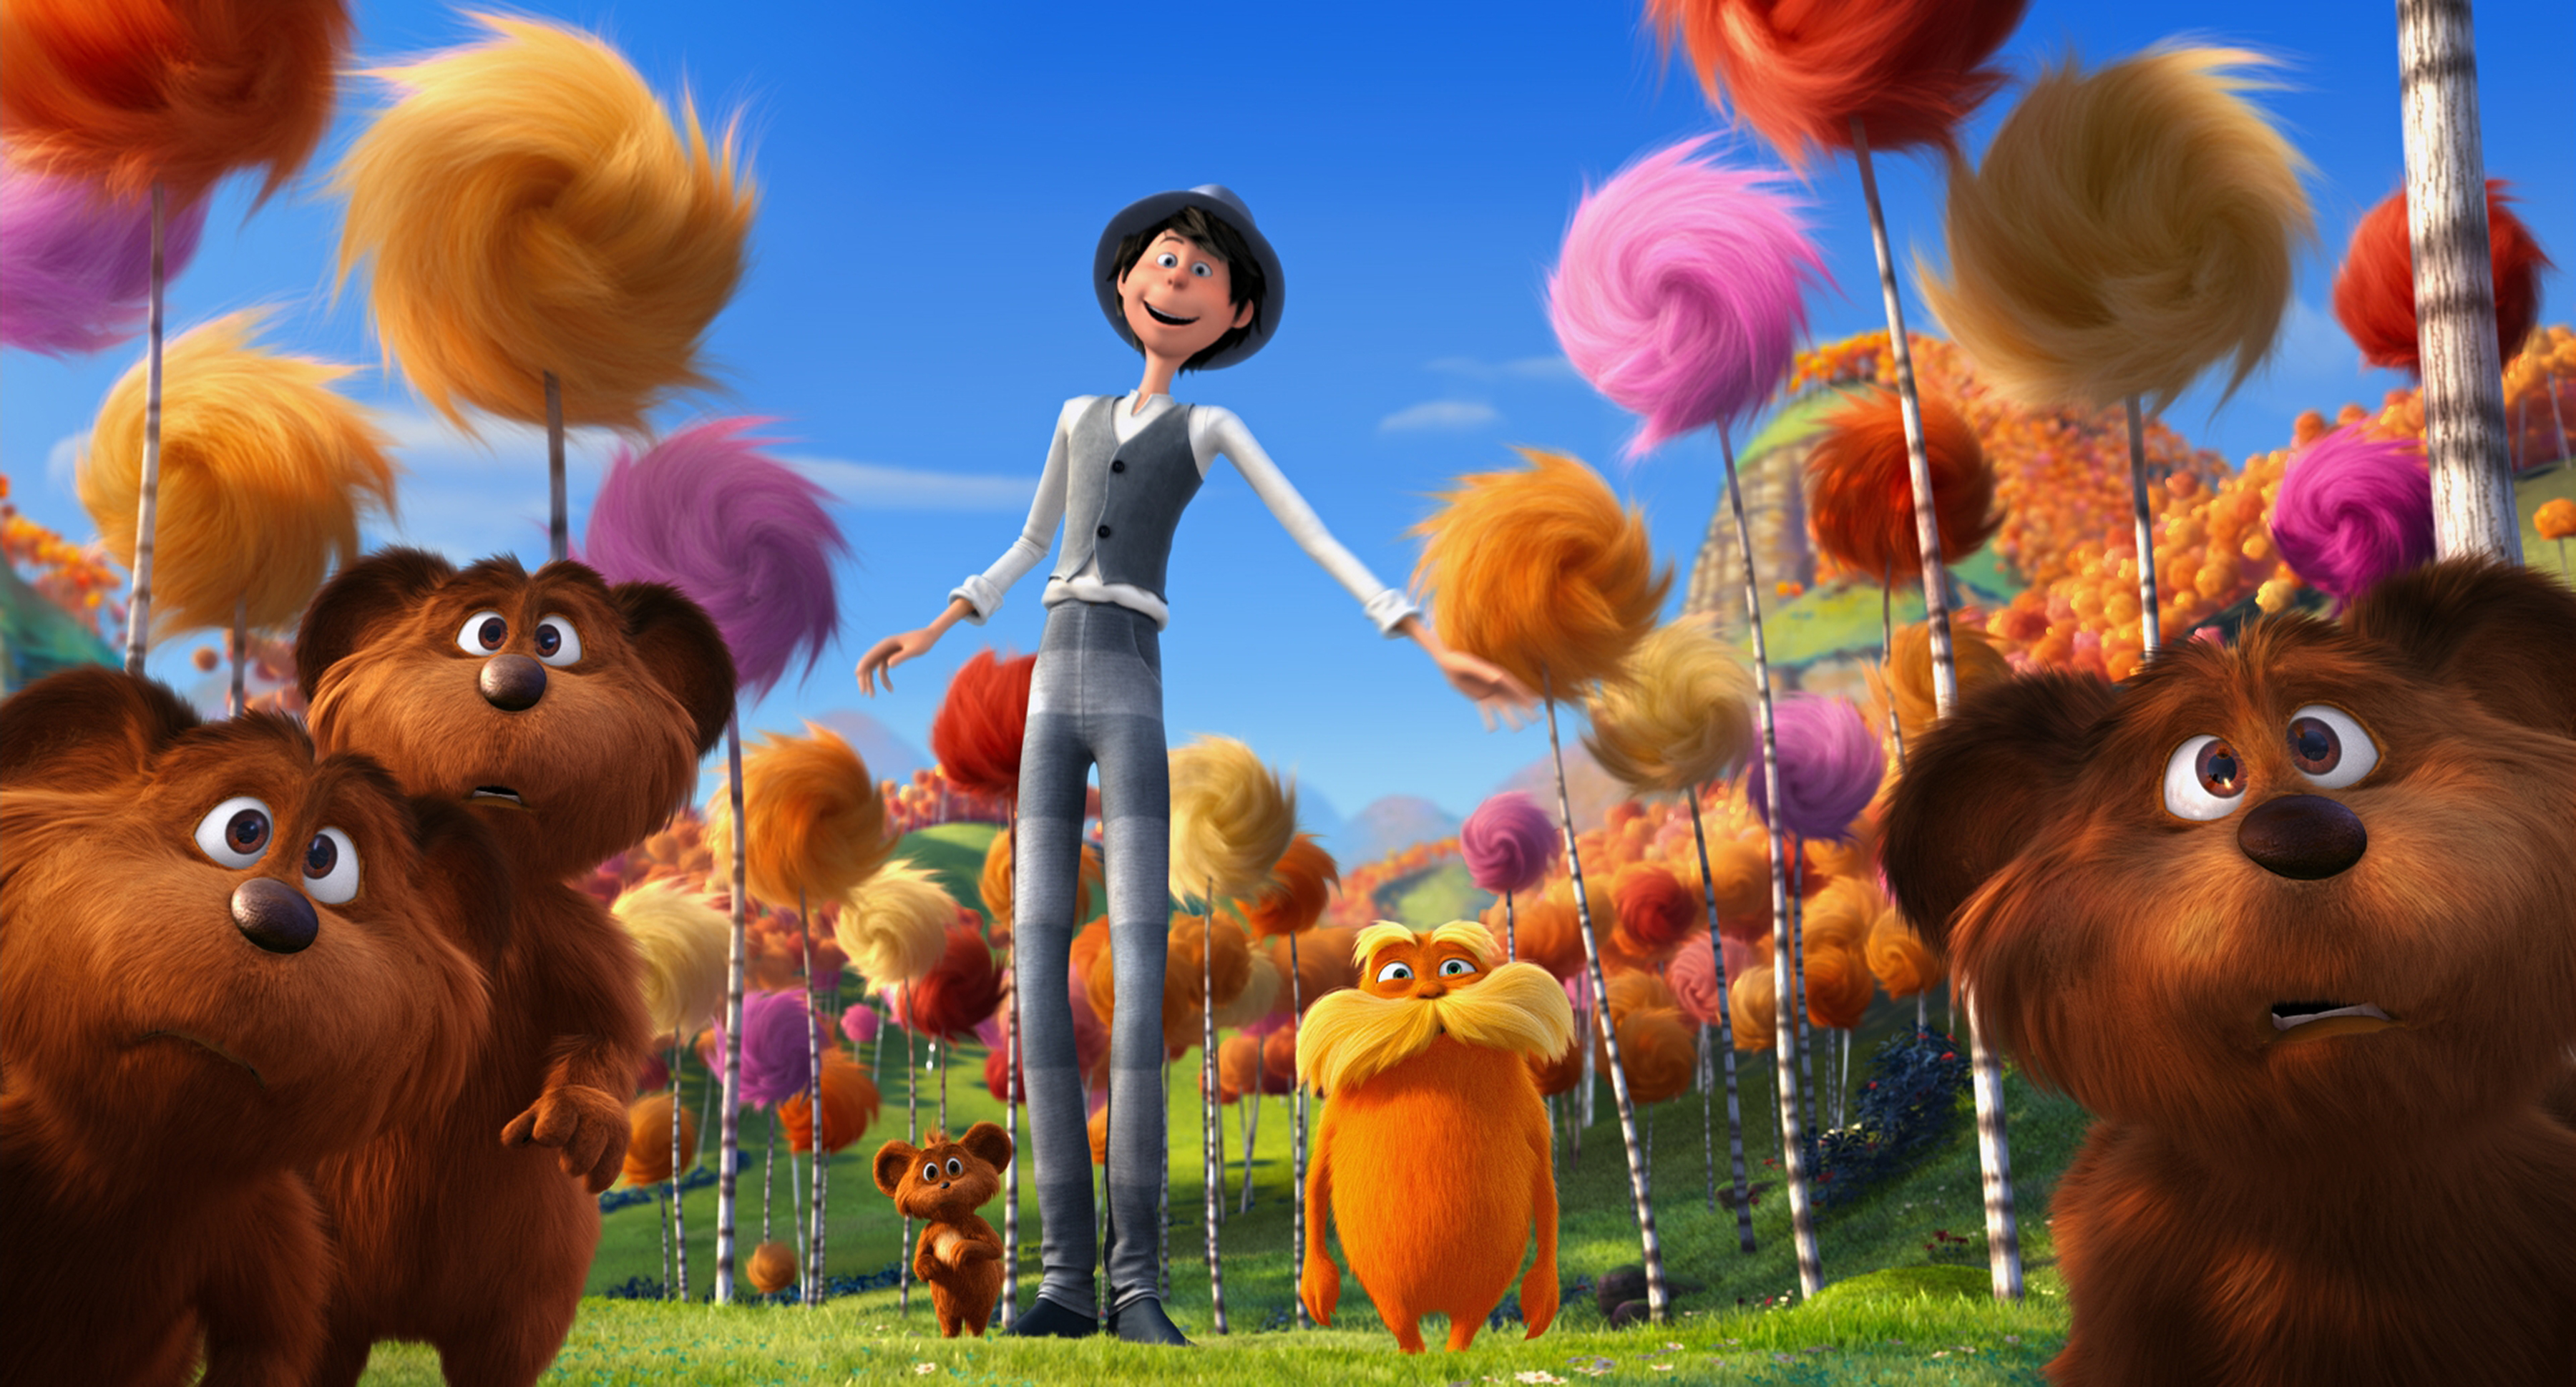 The-Lorax-movie-image-4